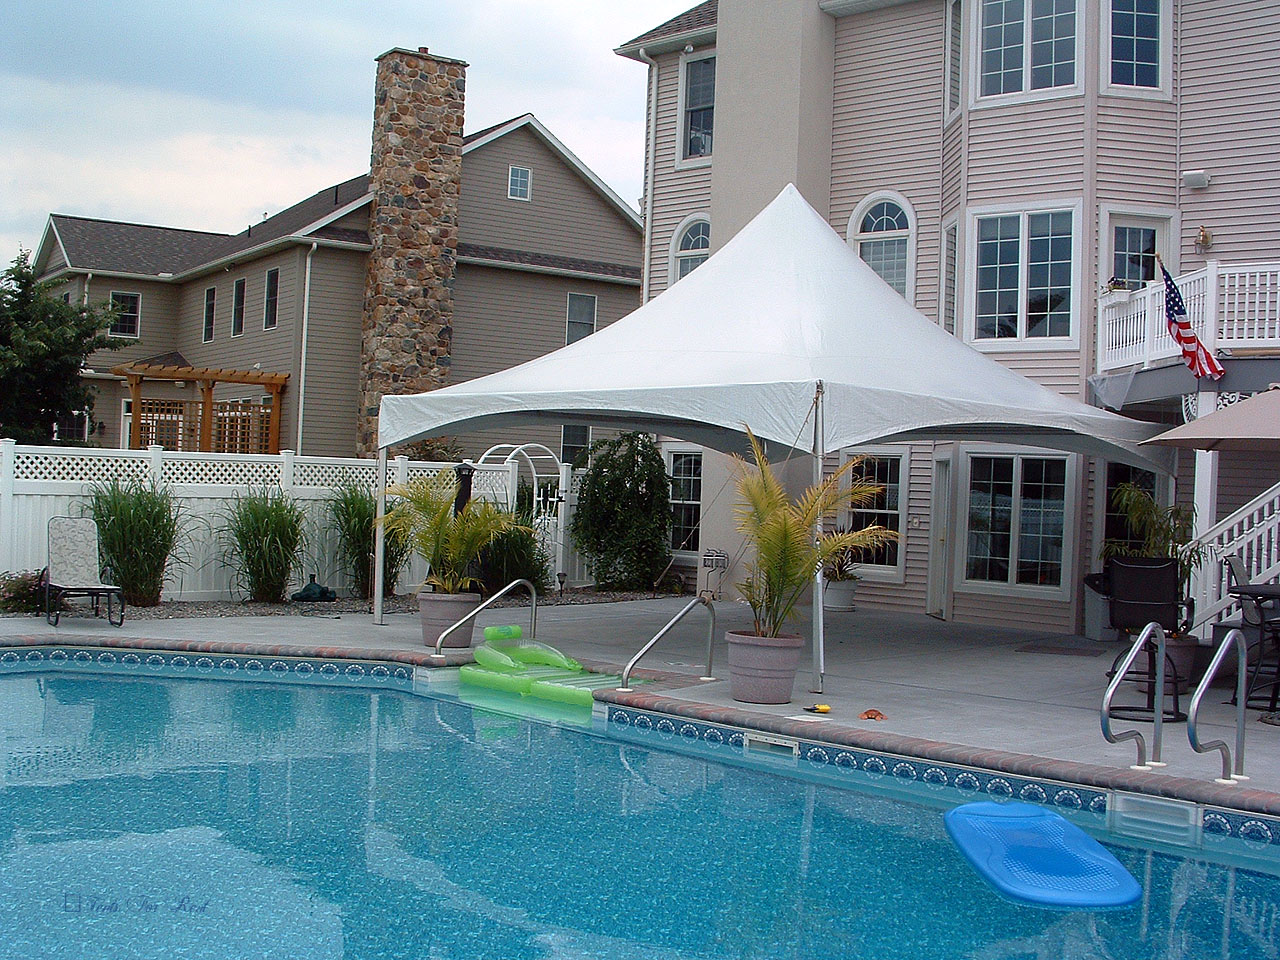 Small Tent Rentals in New Jersey